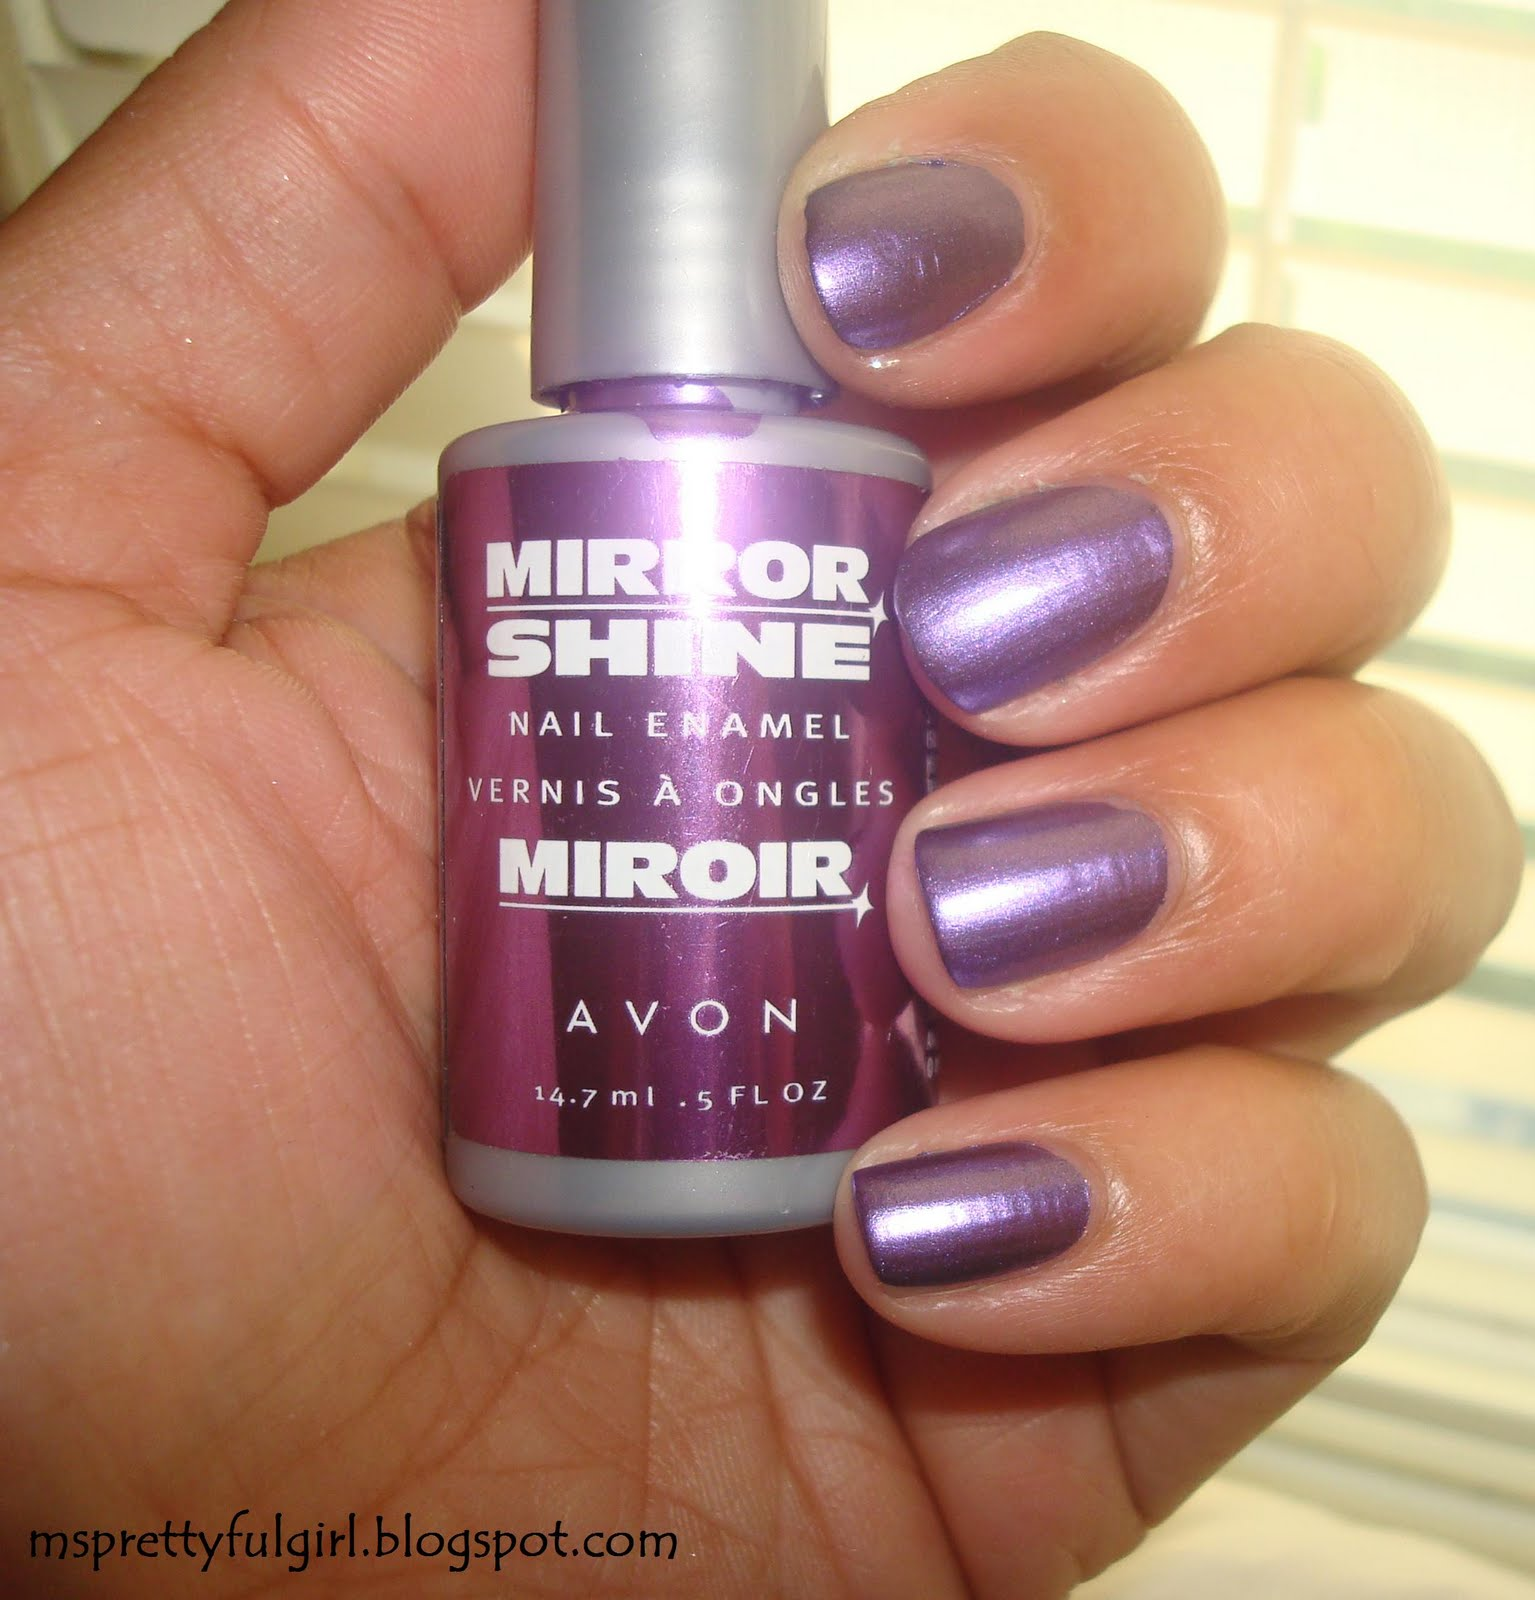 Clumpy Nail Polish: Ms. Prettyful Girl: Finger Painting: Avon Mirror Shine